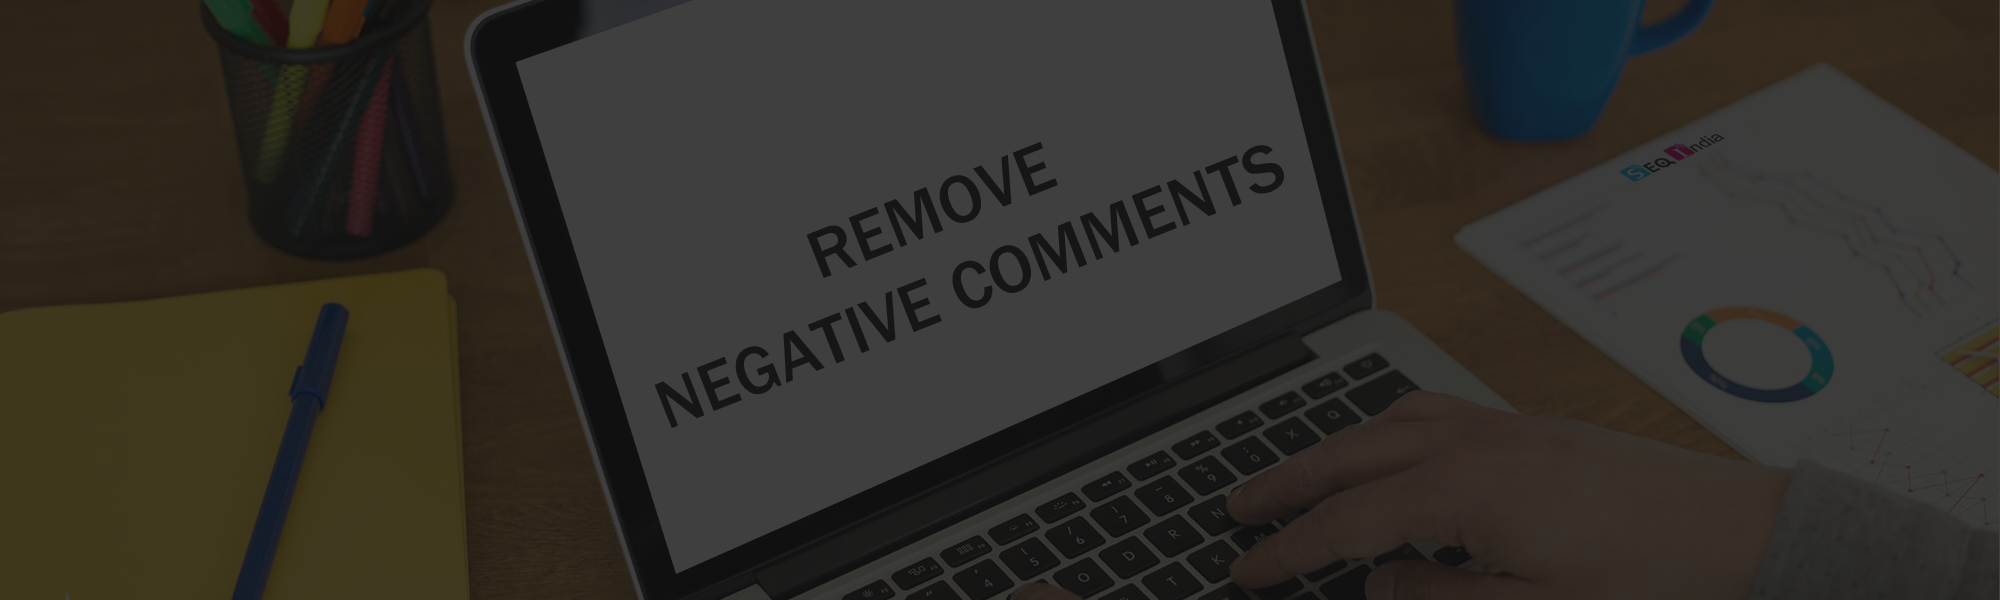 how to remove negative comments online